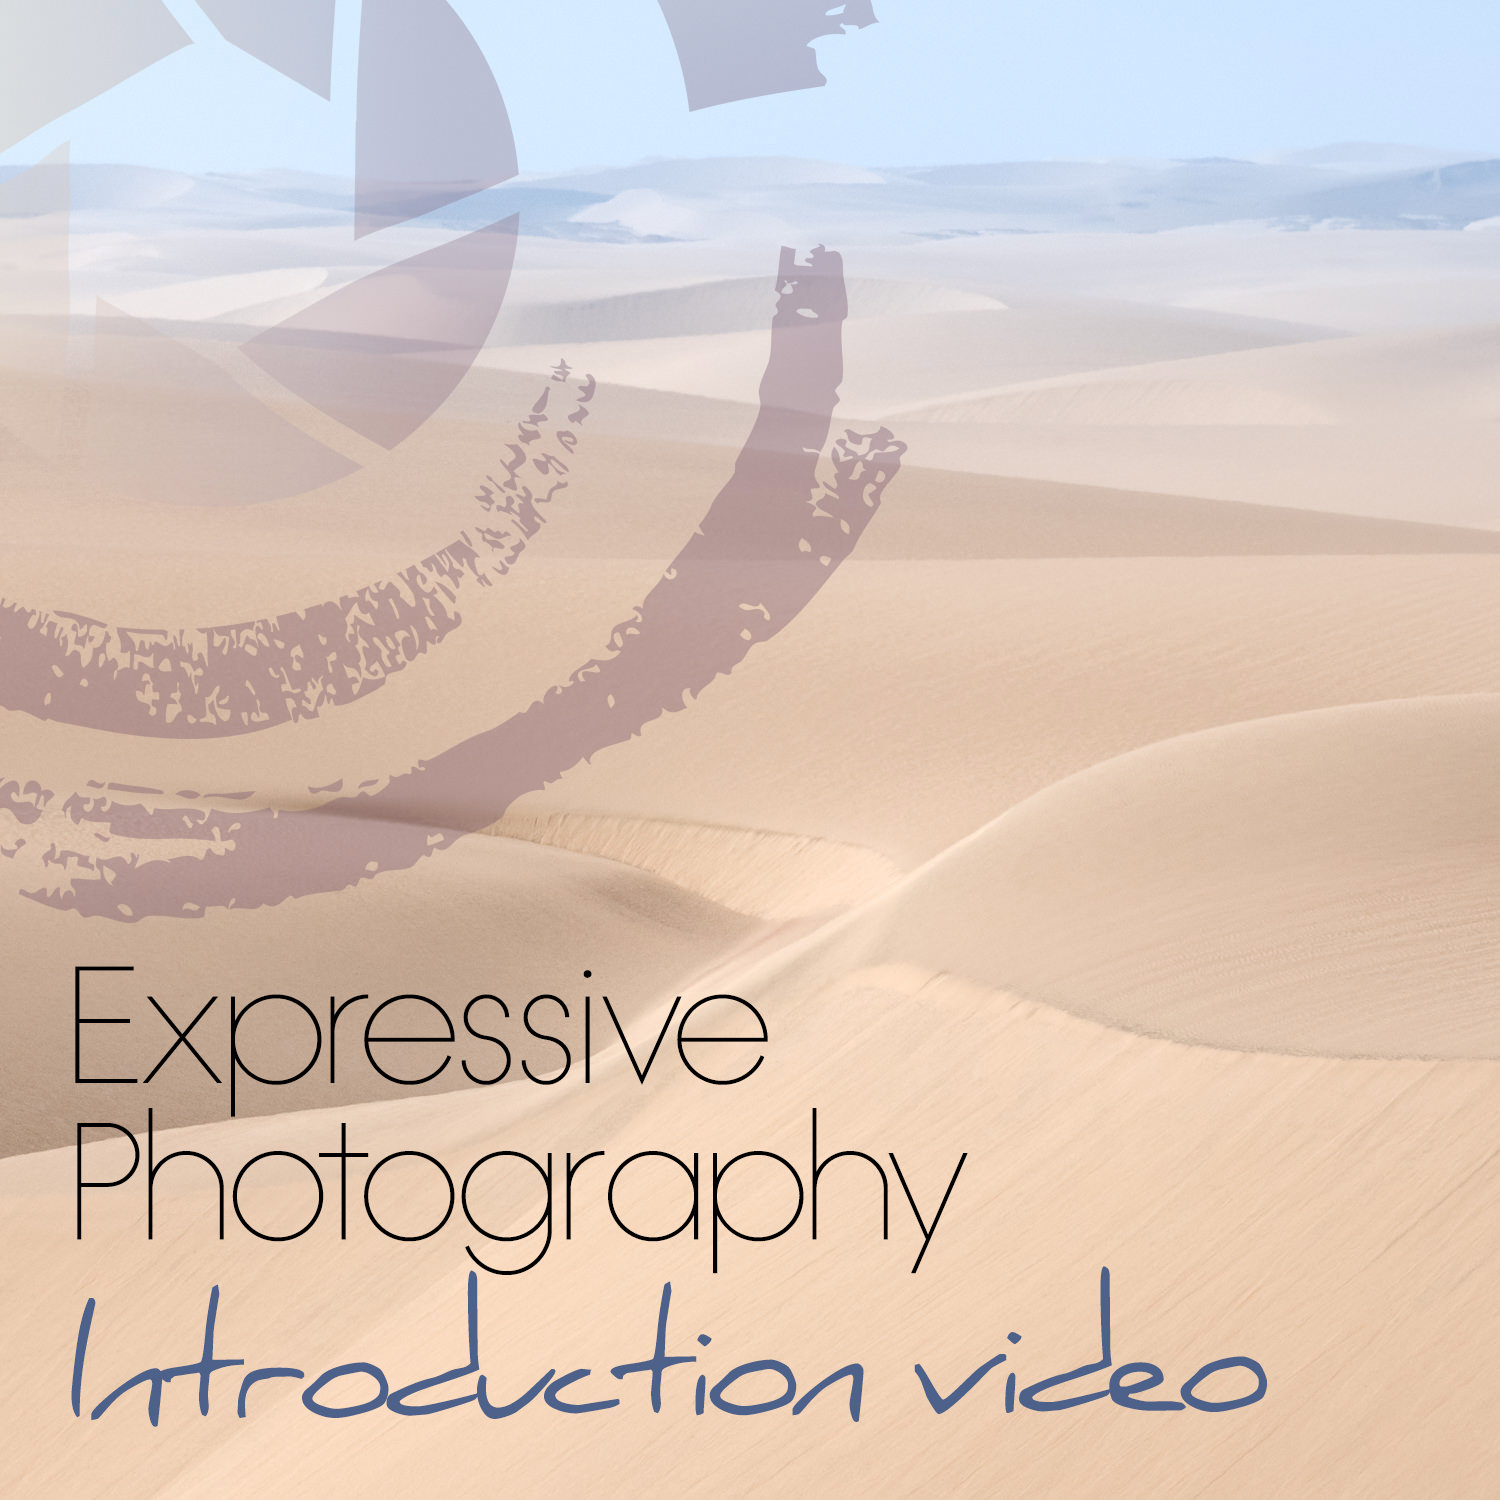 1. EXPRESSIVE PHOTOGRAPHY - VIDEO CONTENT